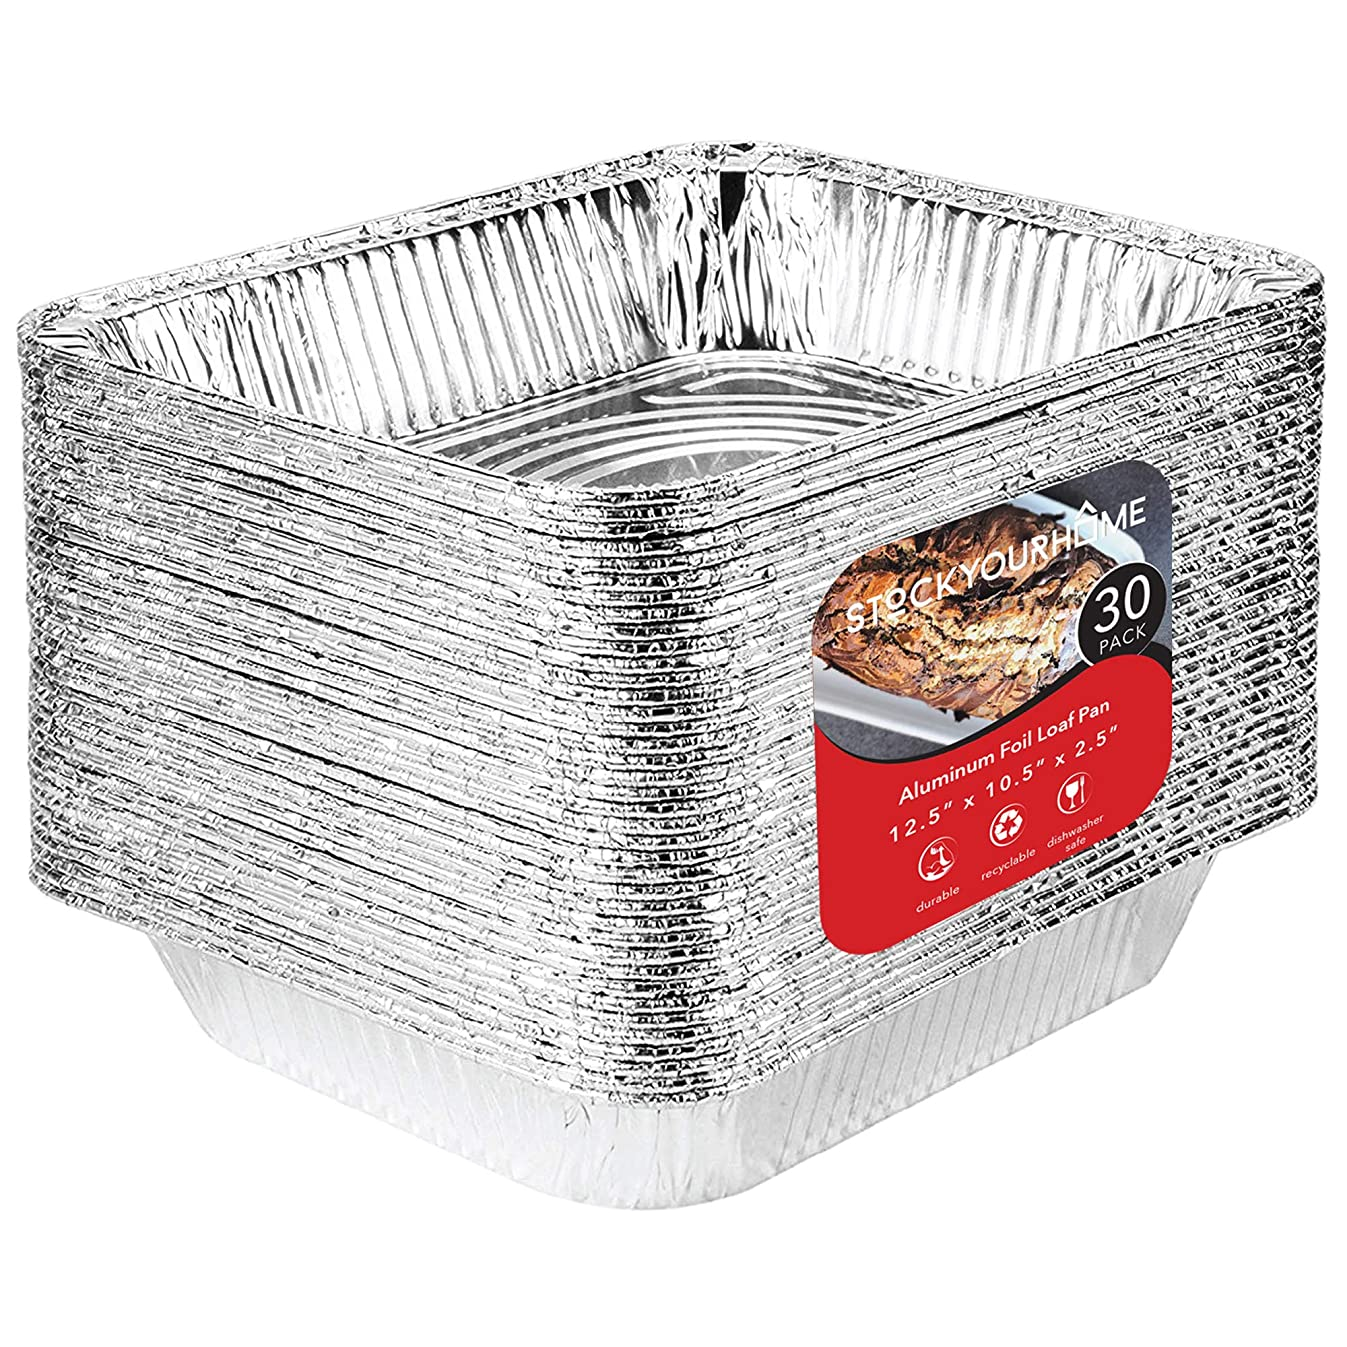 9x13 Disposable Aluminum Foil Baking Pans (30 Pack) - Half Size Steam Table Deep Pans - Aluminum Trays Great for Baking, Cooking, Heating, Storing, Prepping Food – 12.5